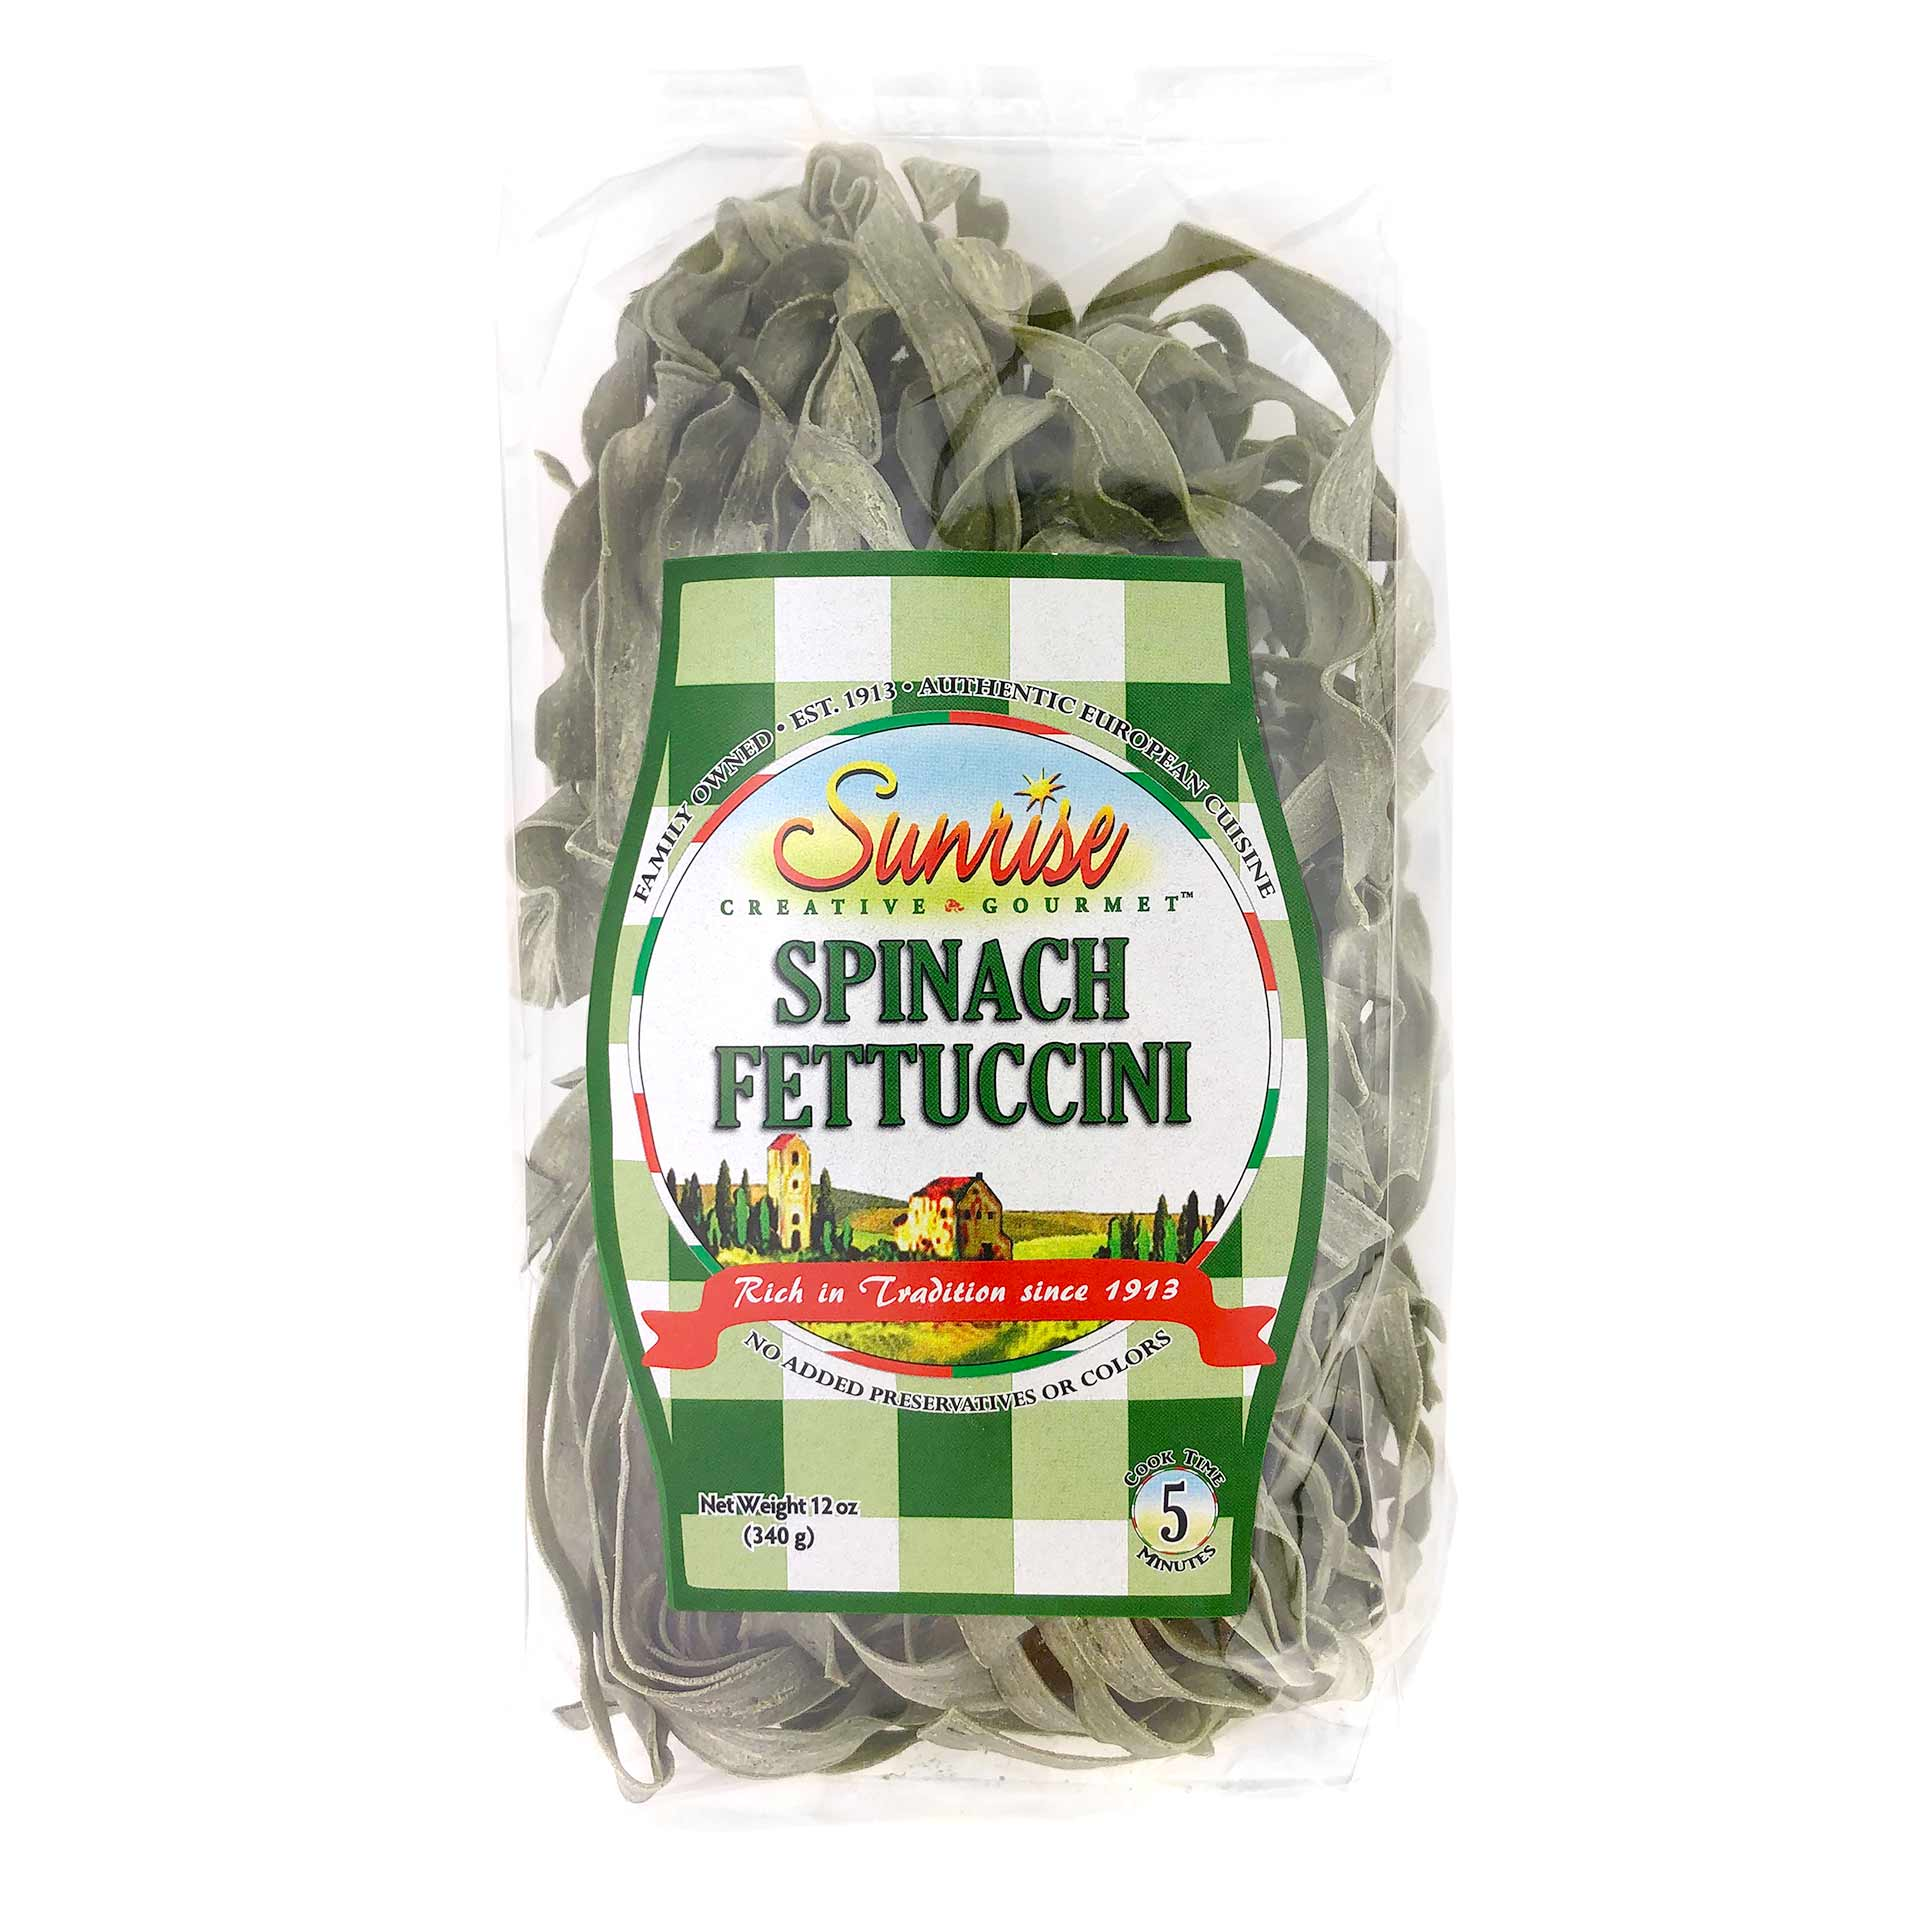 Sunrise Spinach Fettuccini